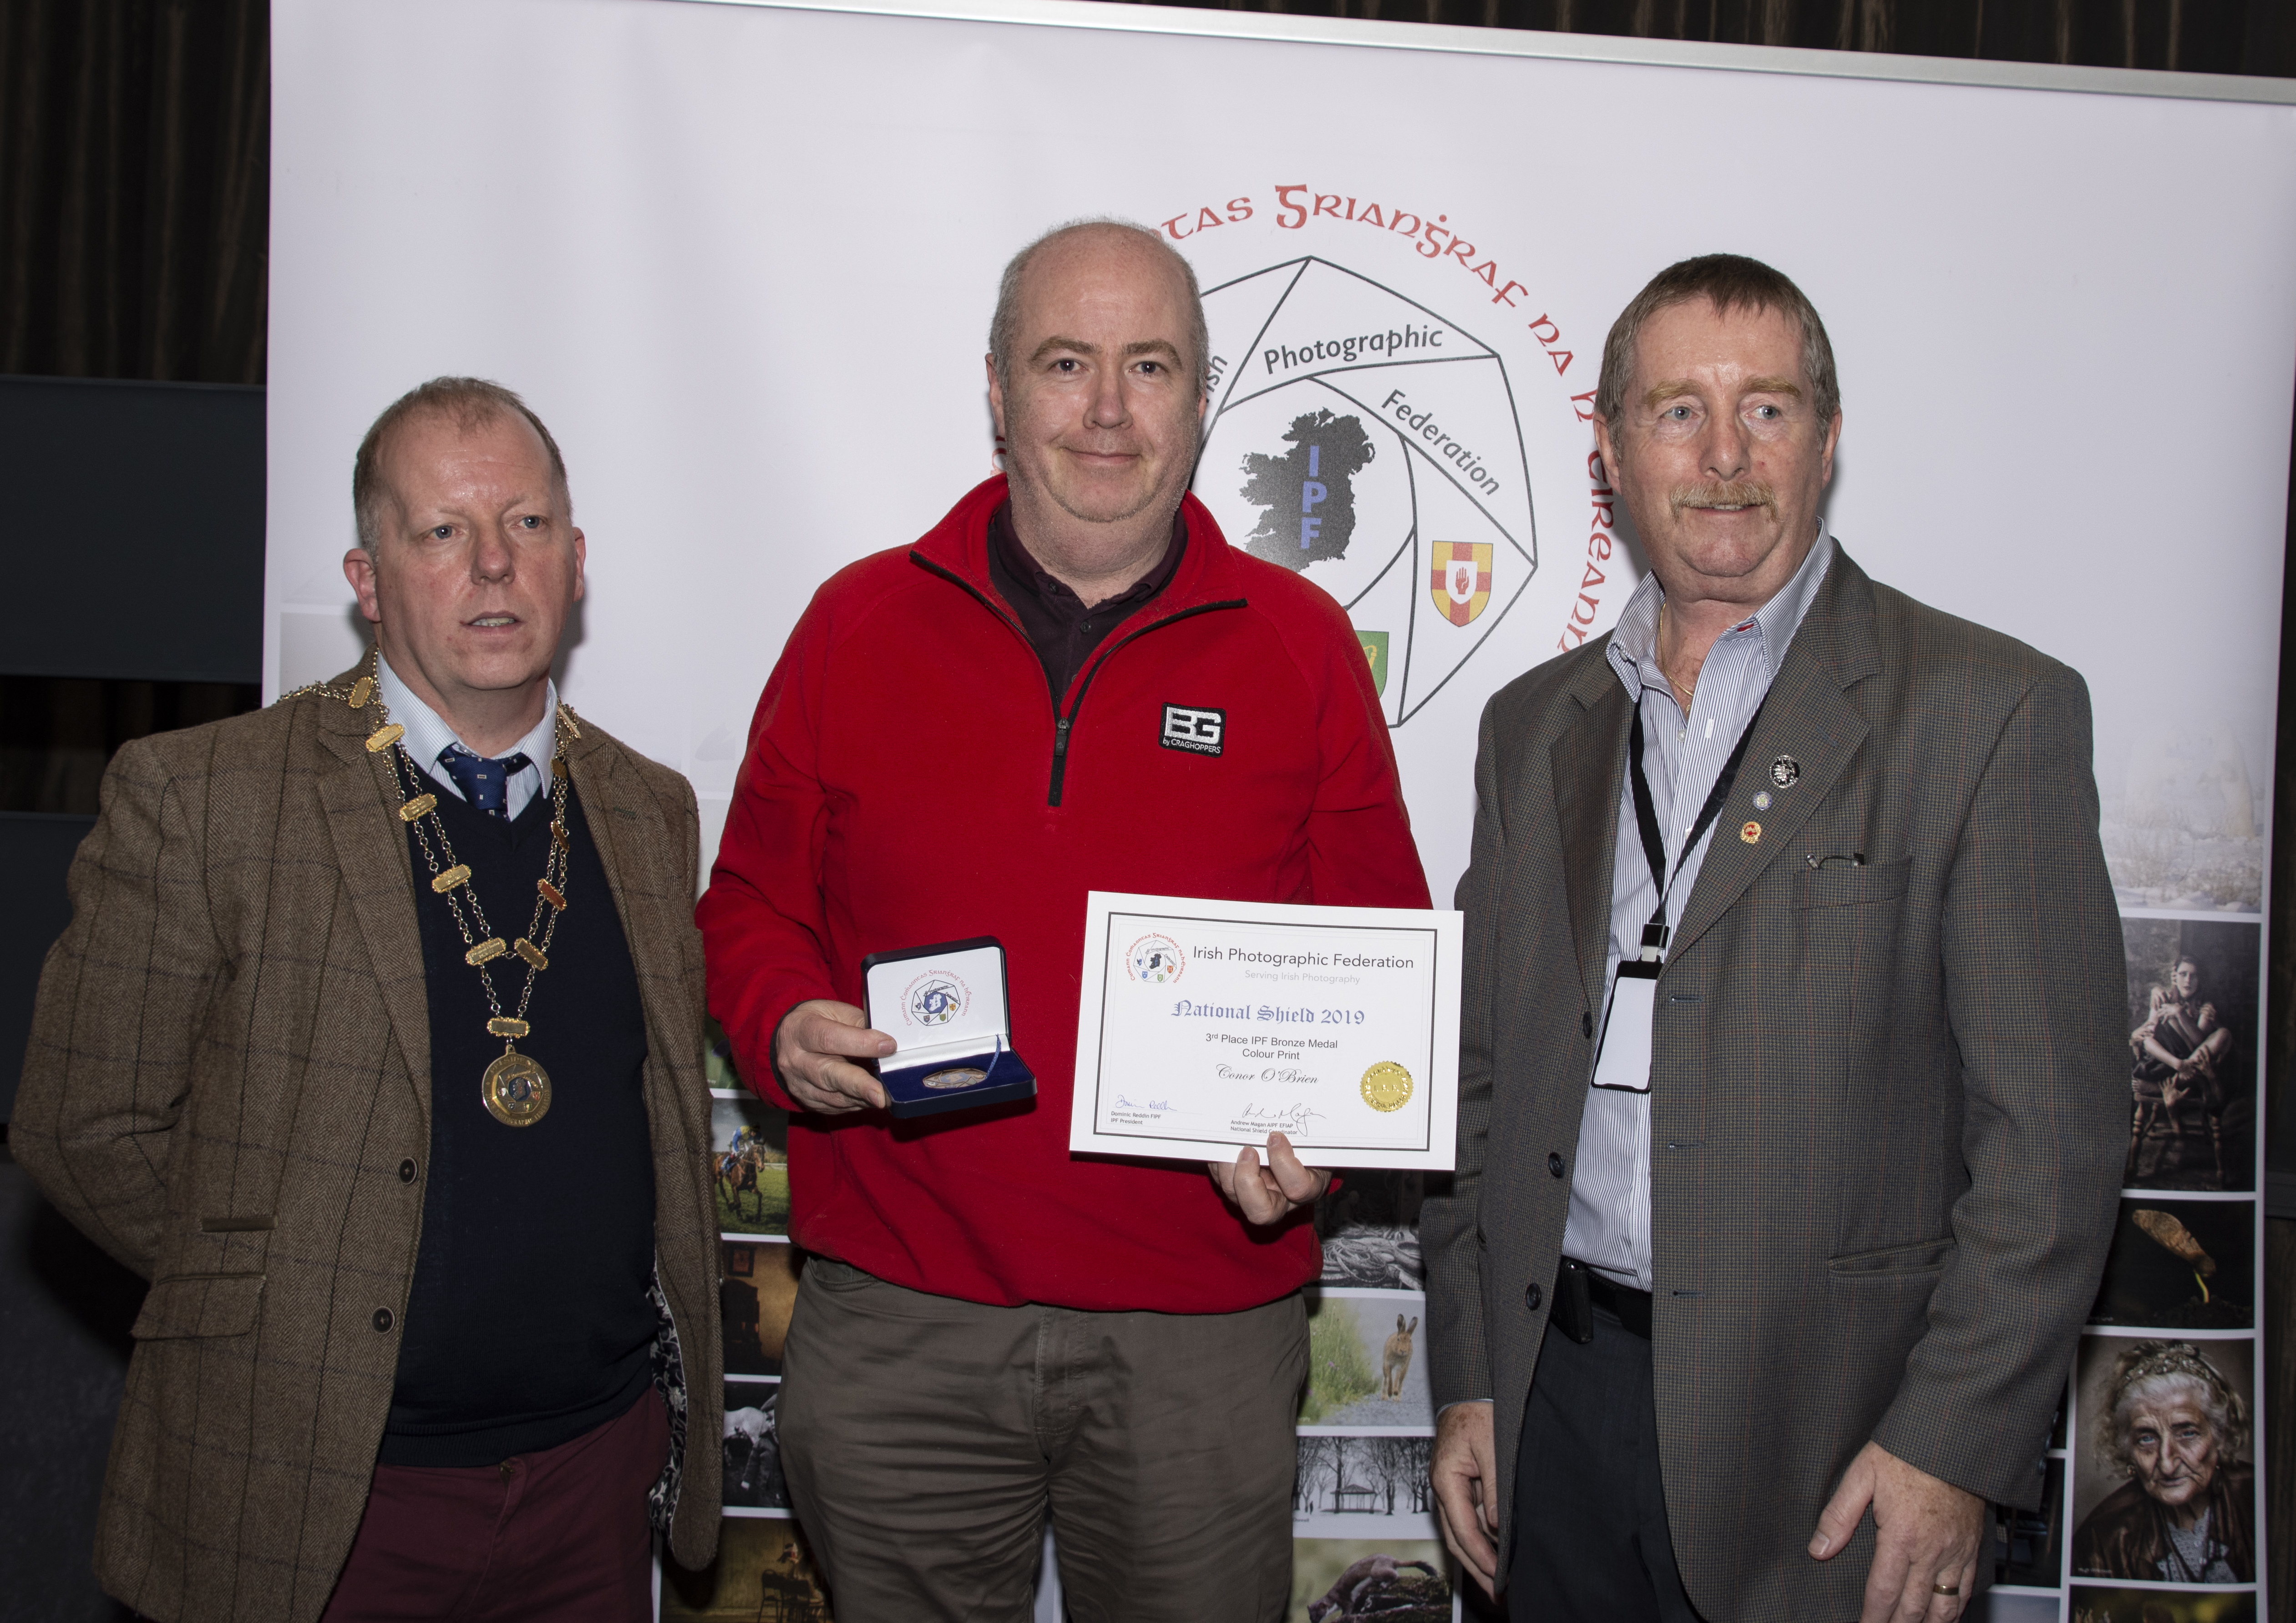 Colour, IPF-Bronze Medal Plus Certificate Conor O'Brien – Birds of a feather – Raheny Camera Club